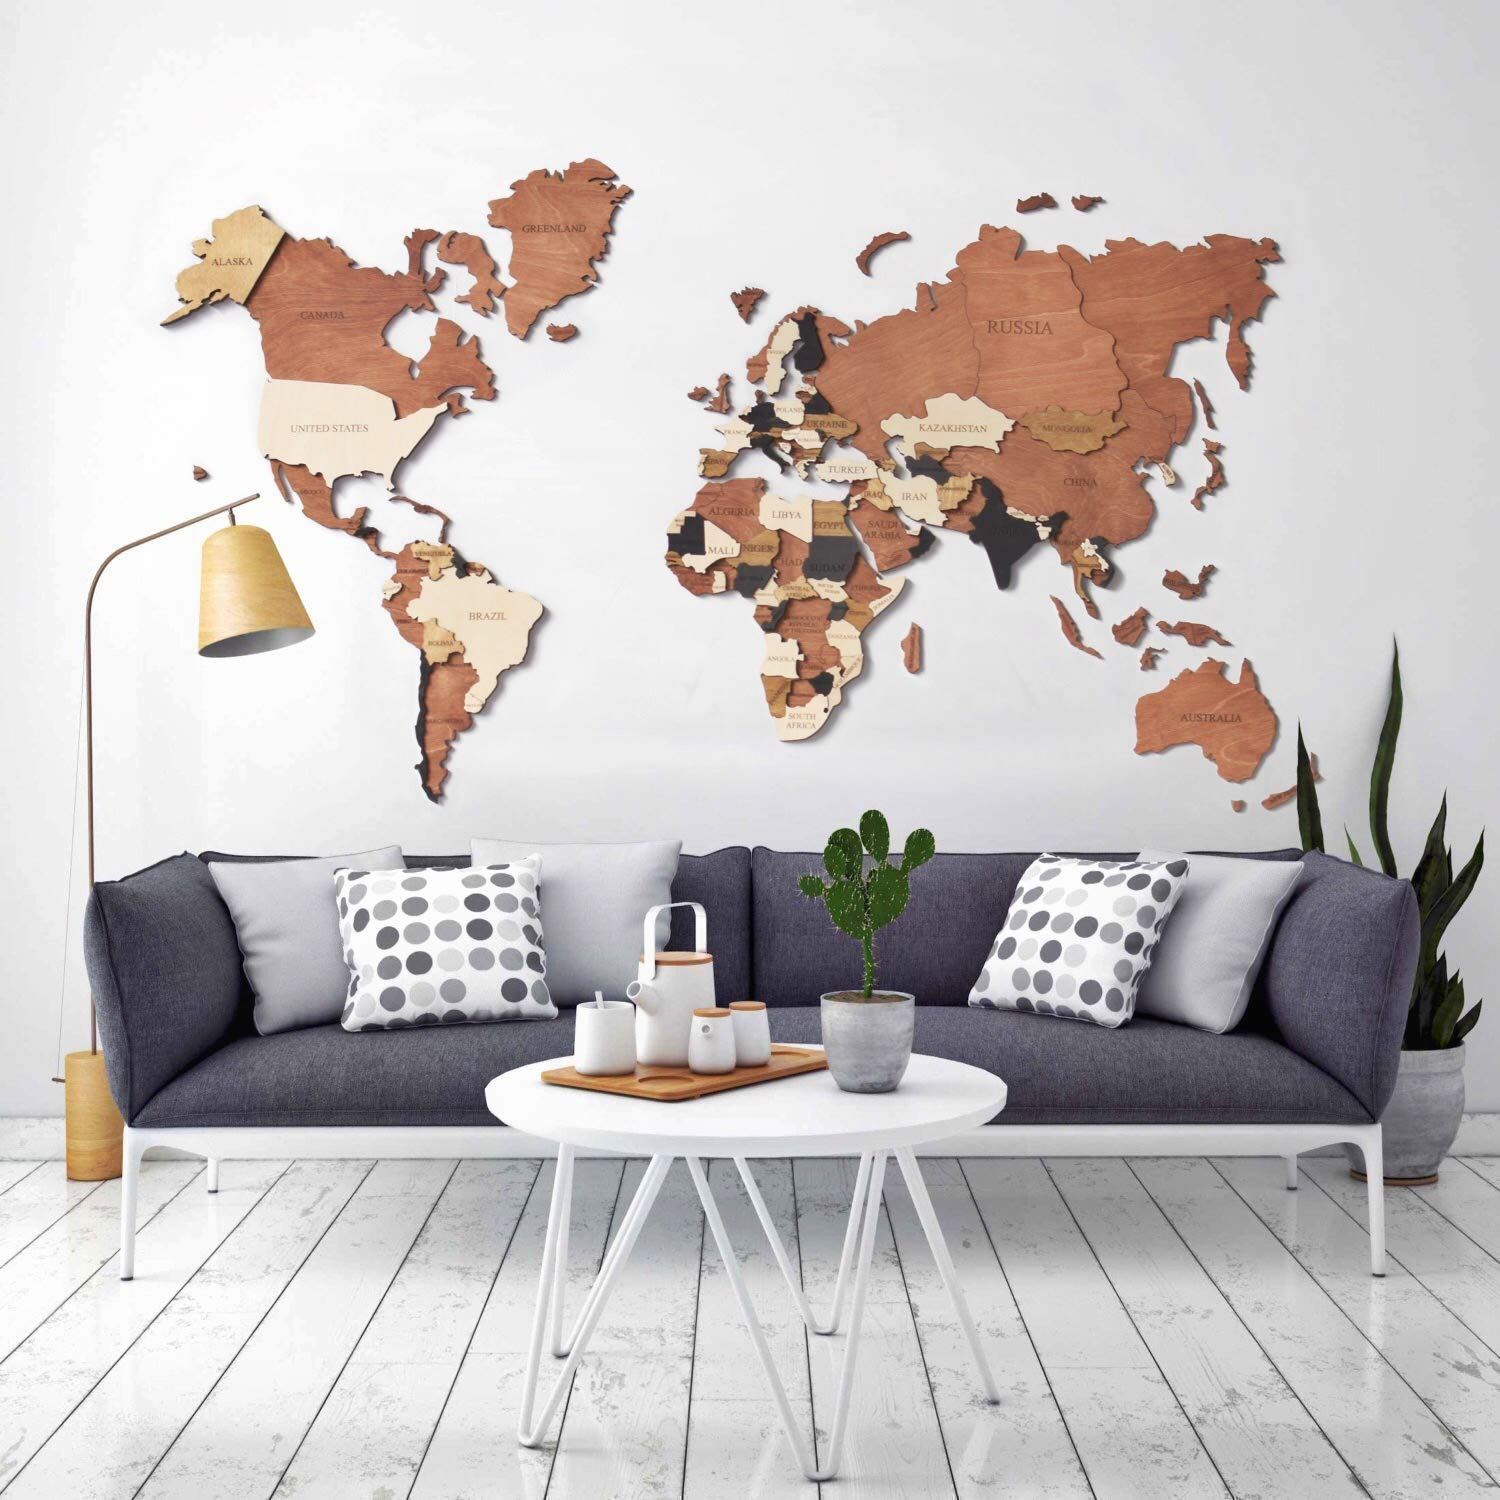 Amazon Com Woodpecstudio 3d Wood World Map Wall Art Wall Decor Christmas With States Large Travel Wall Rustic Home Decor Office Dorm Living Room Interior Design M Size Handmade